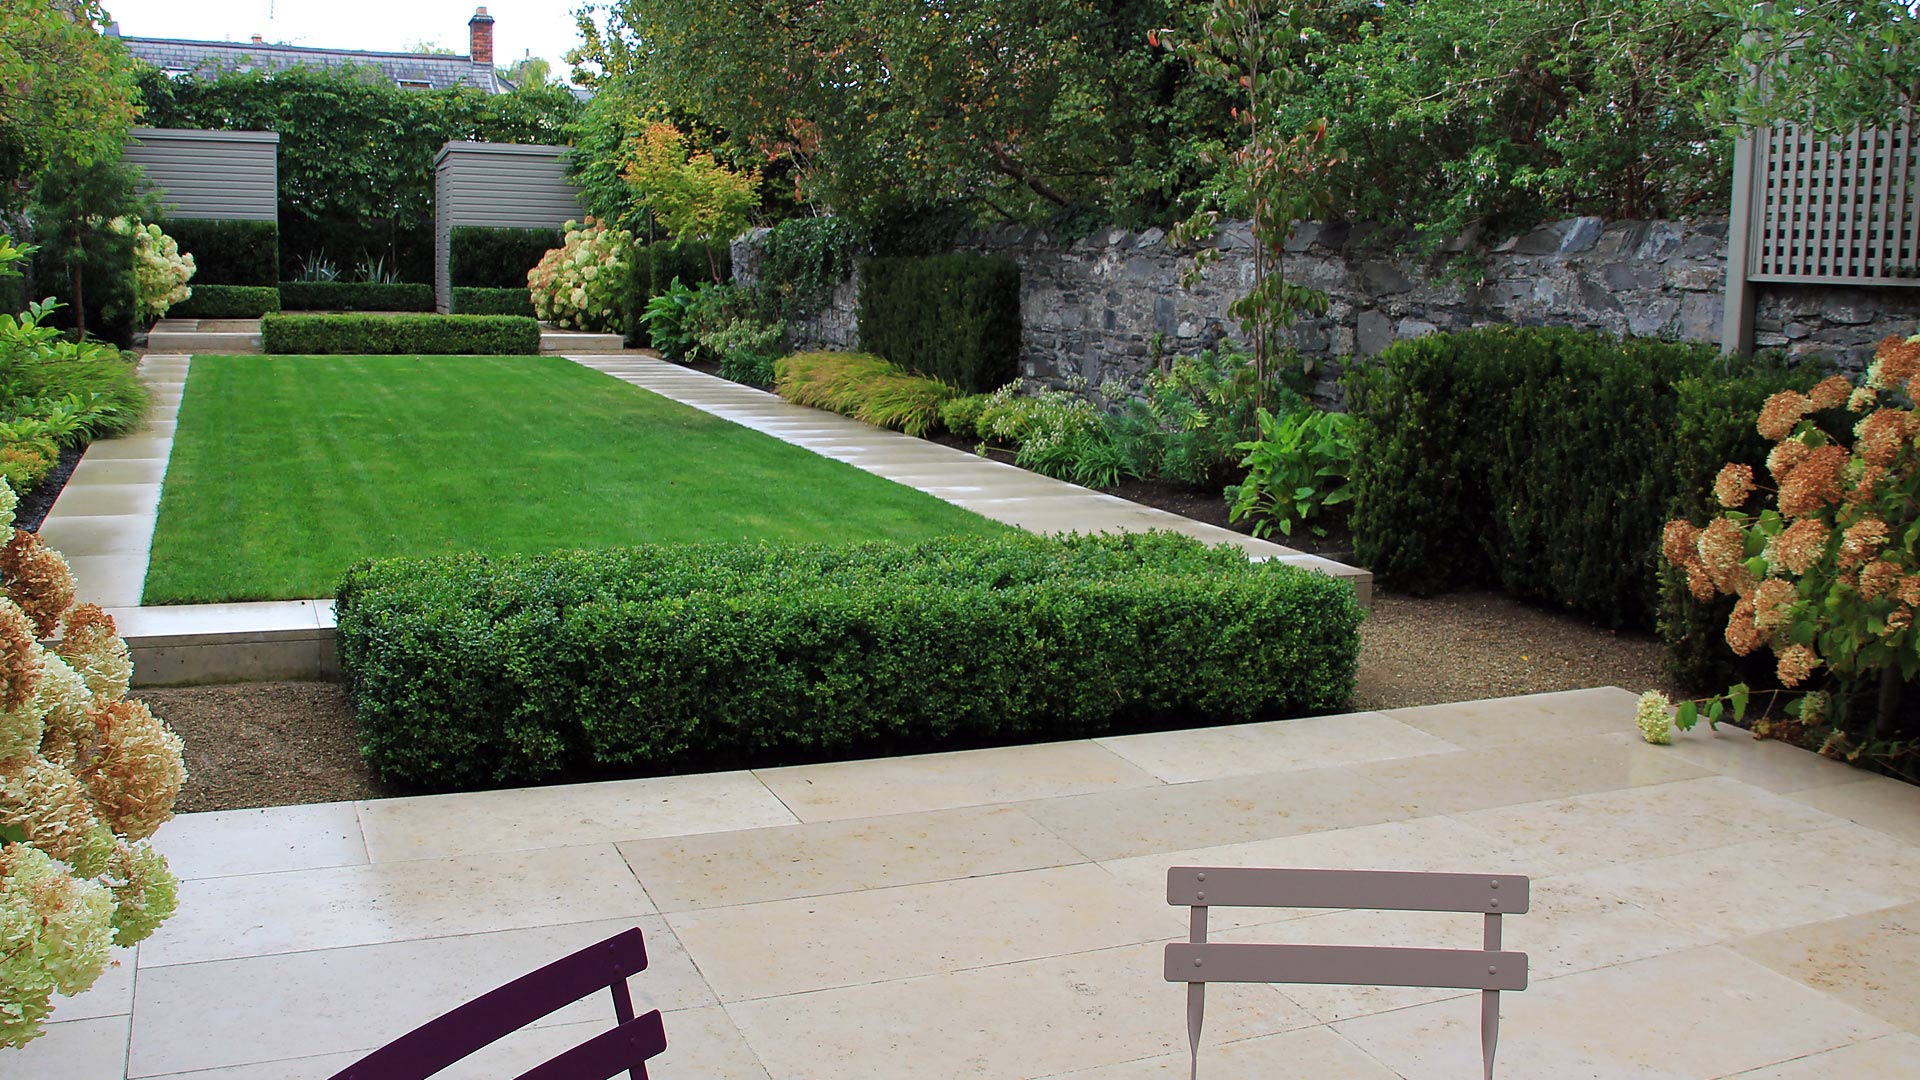 1000 images about trethewey contemporary lawn on for Modern garden design ideas